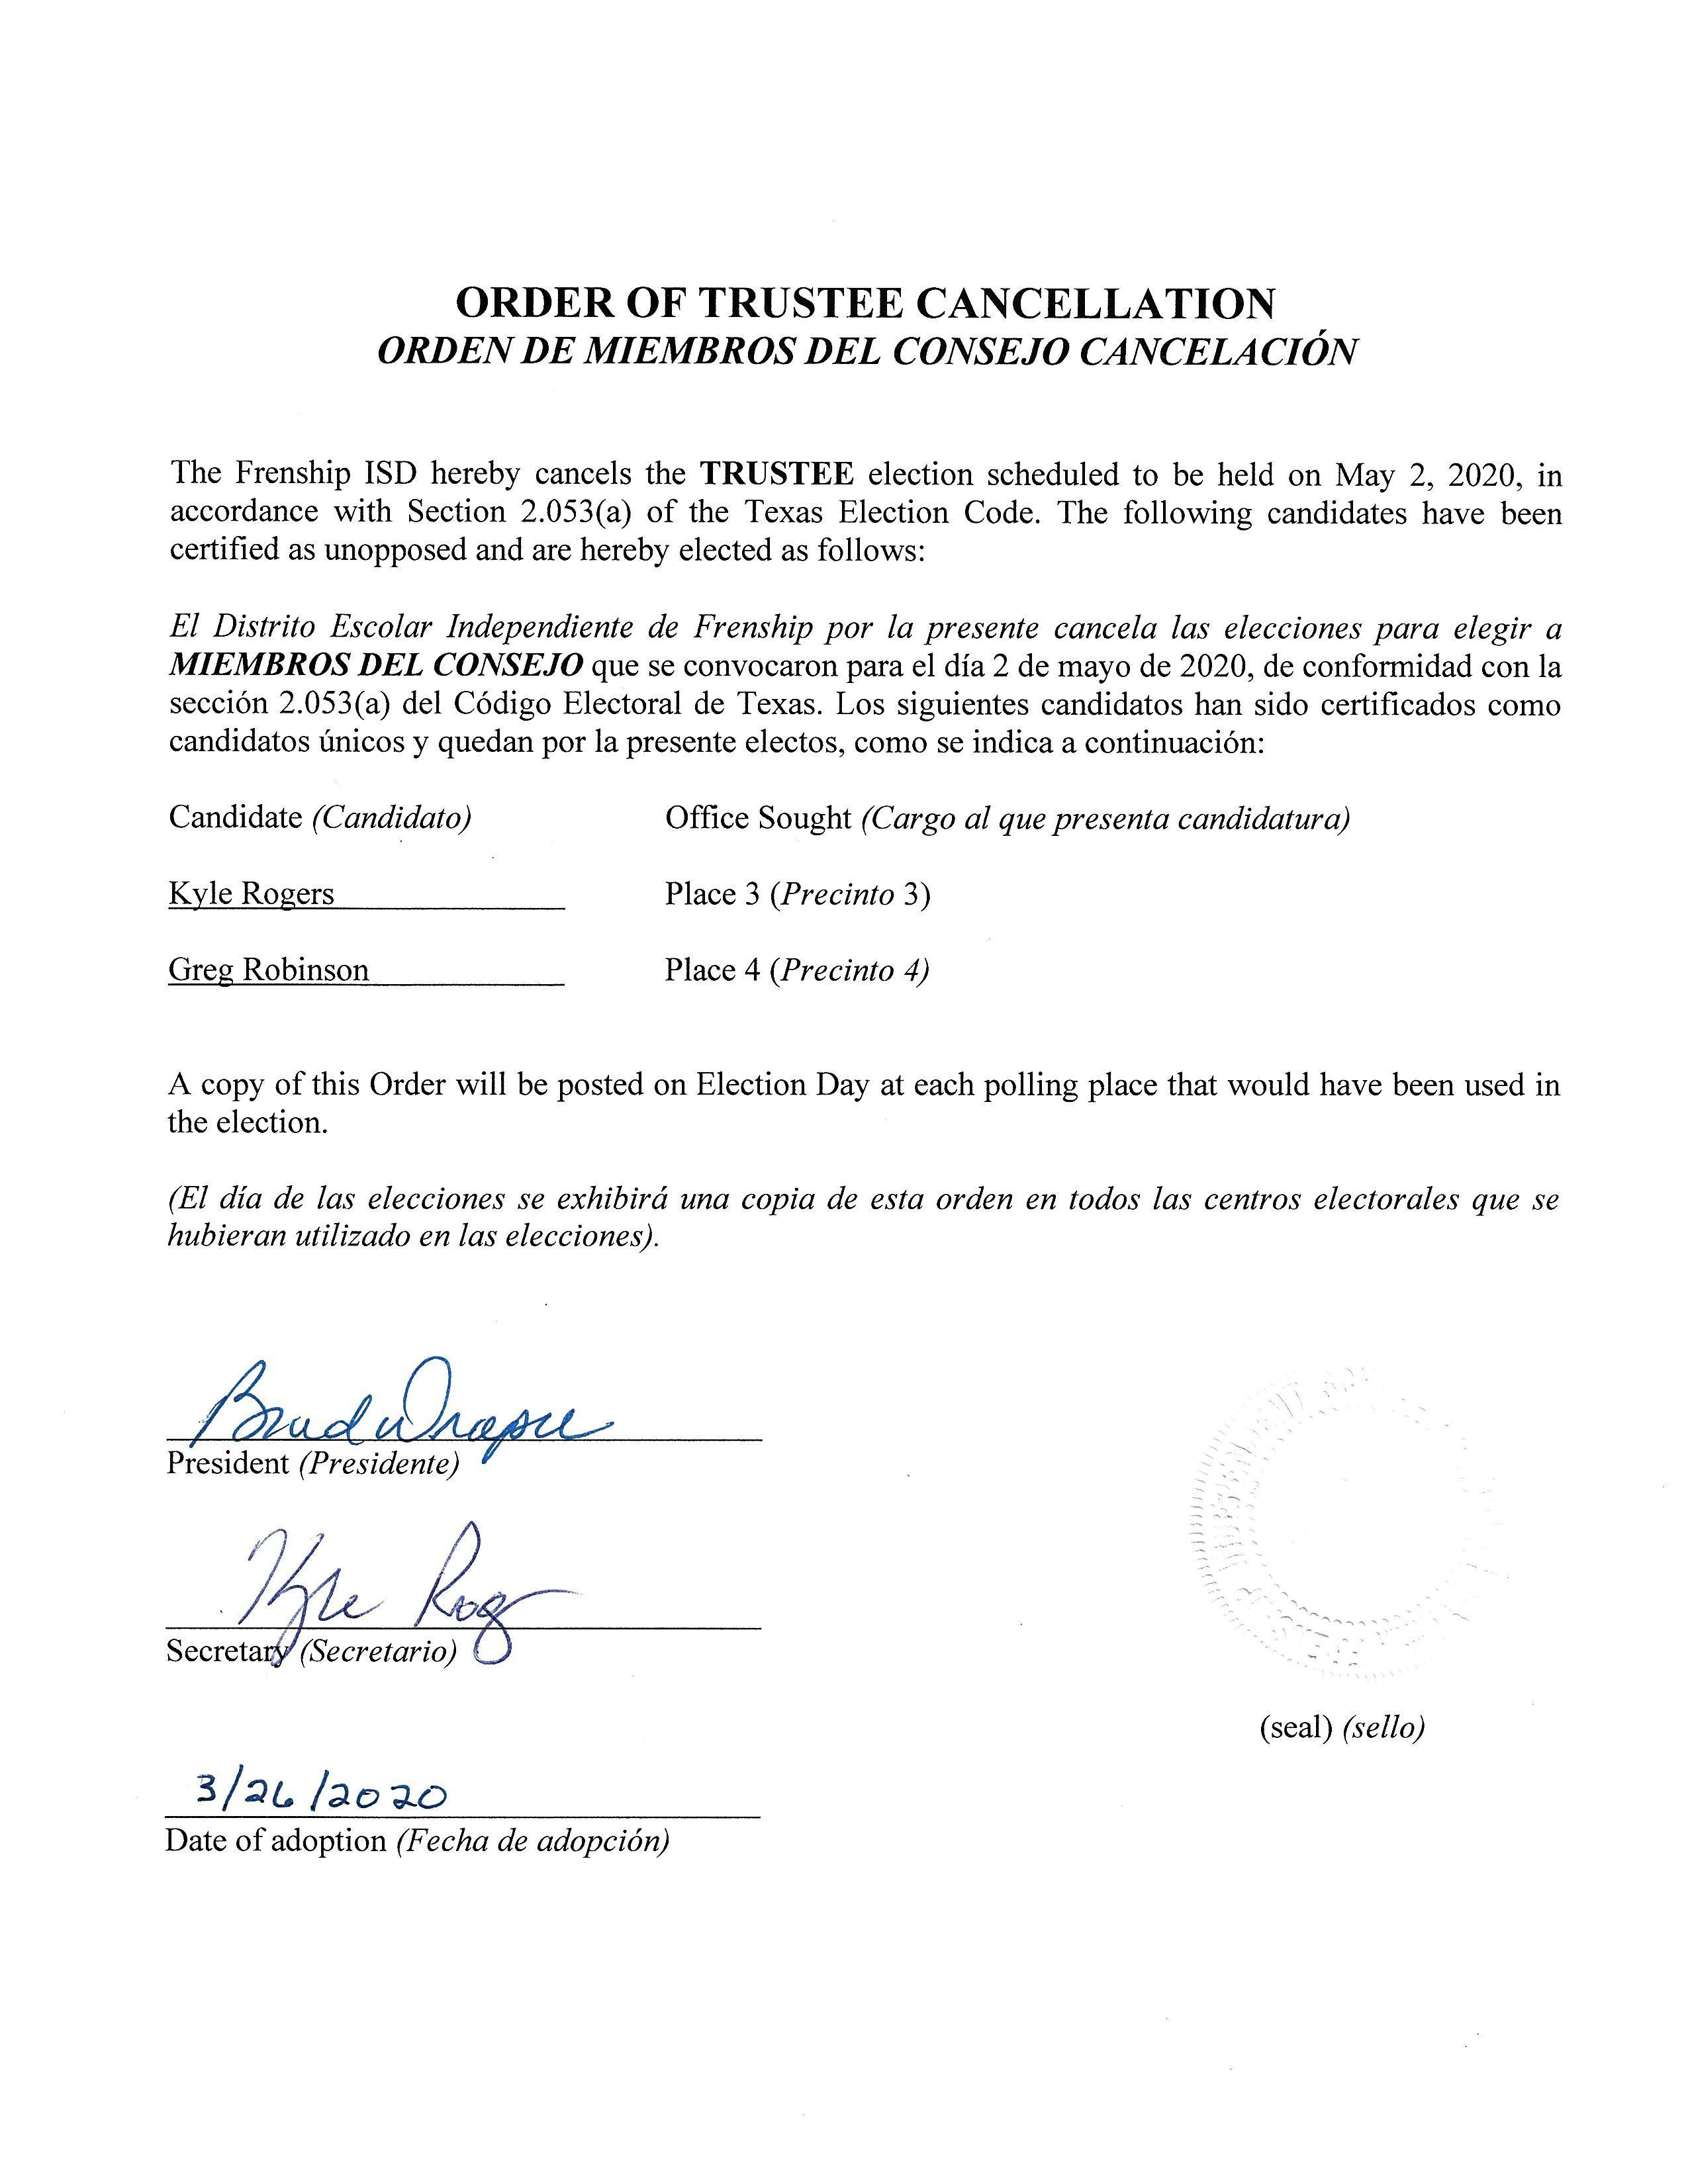 Cancellation Order of May 2, 2020 Trustee Election